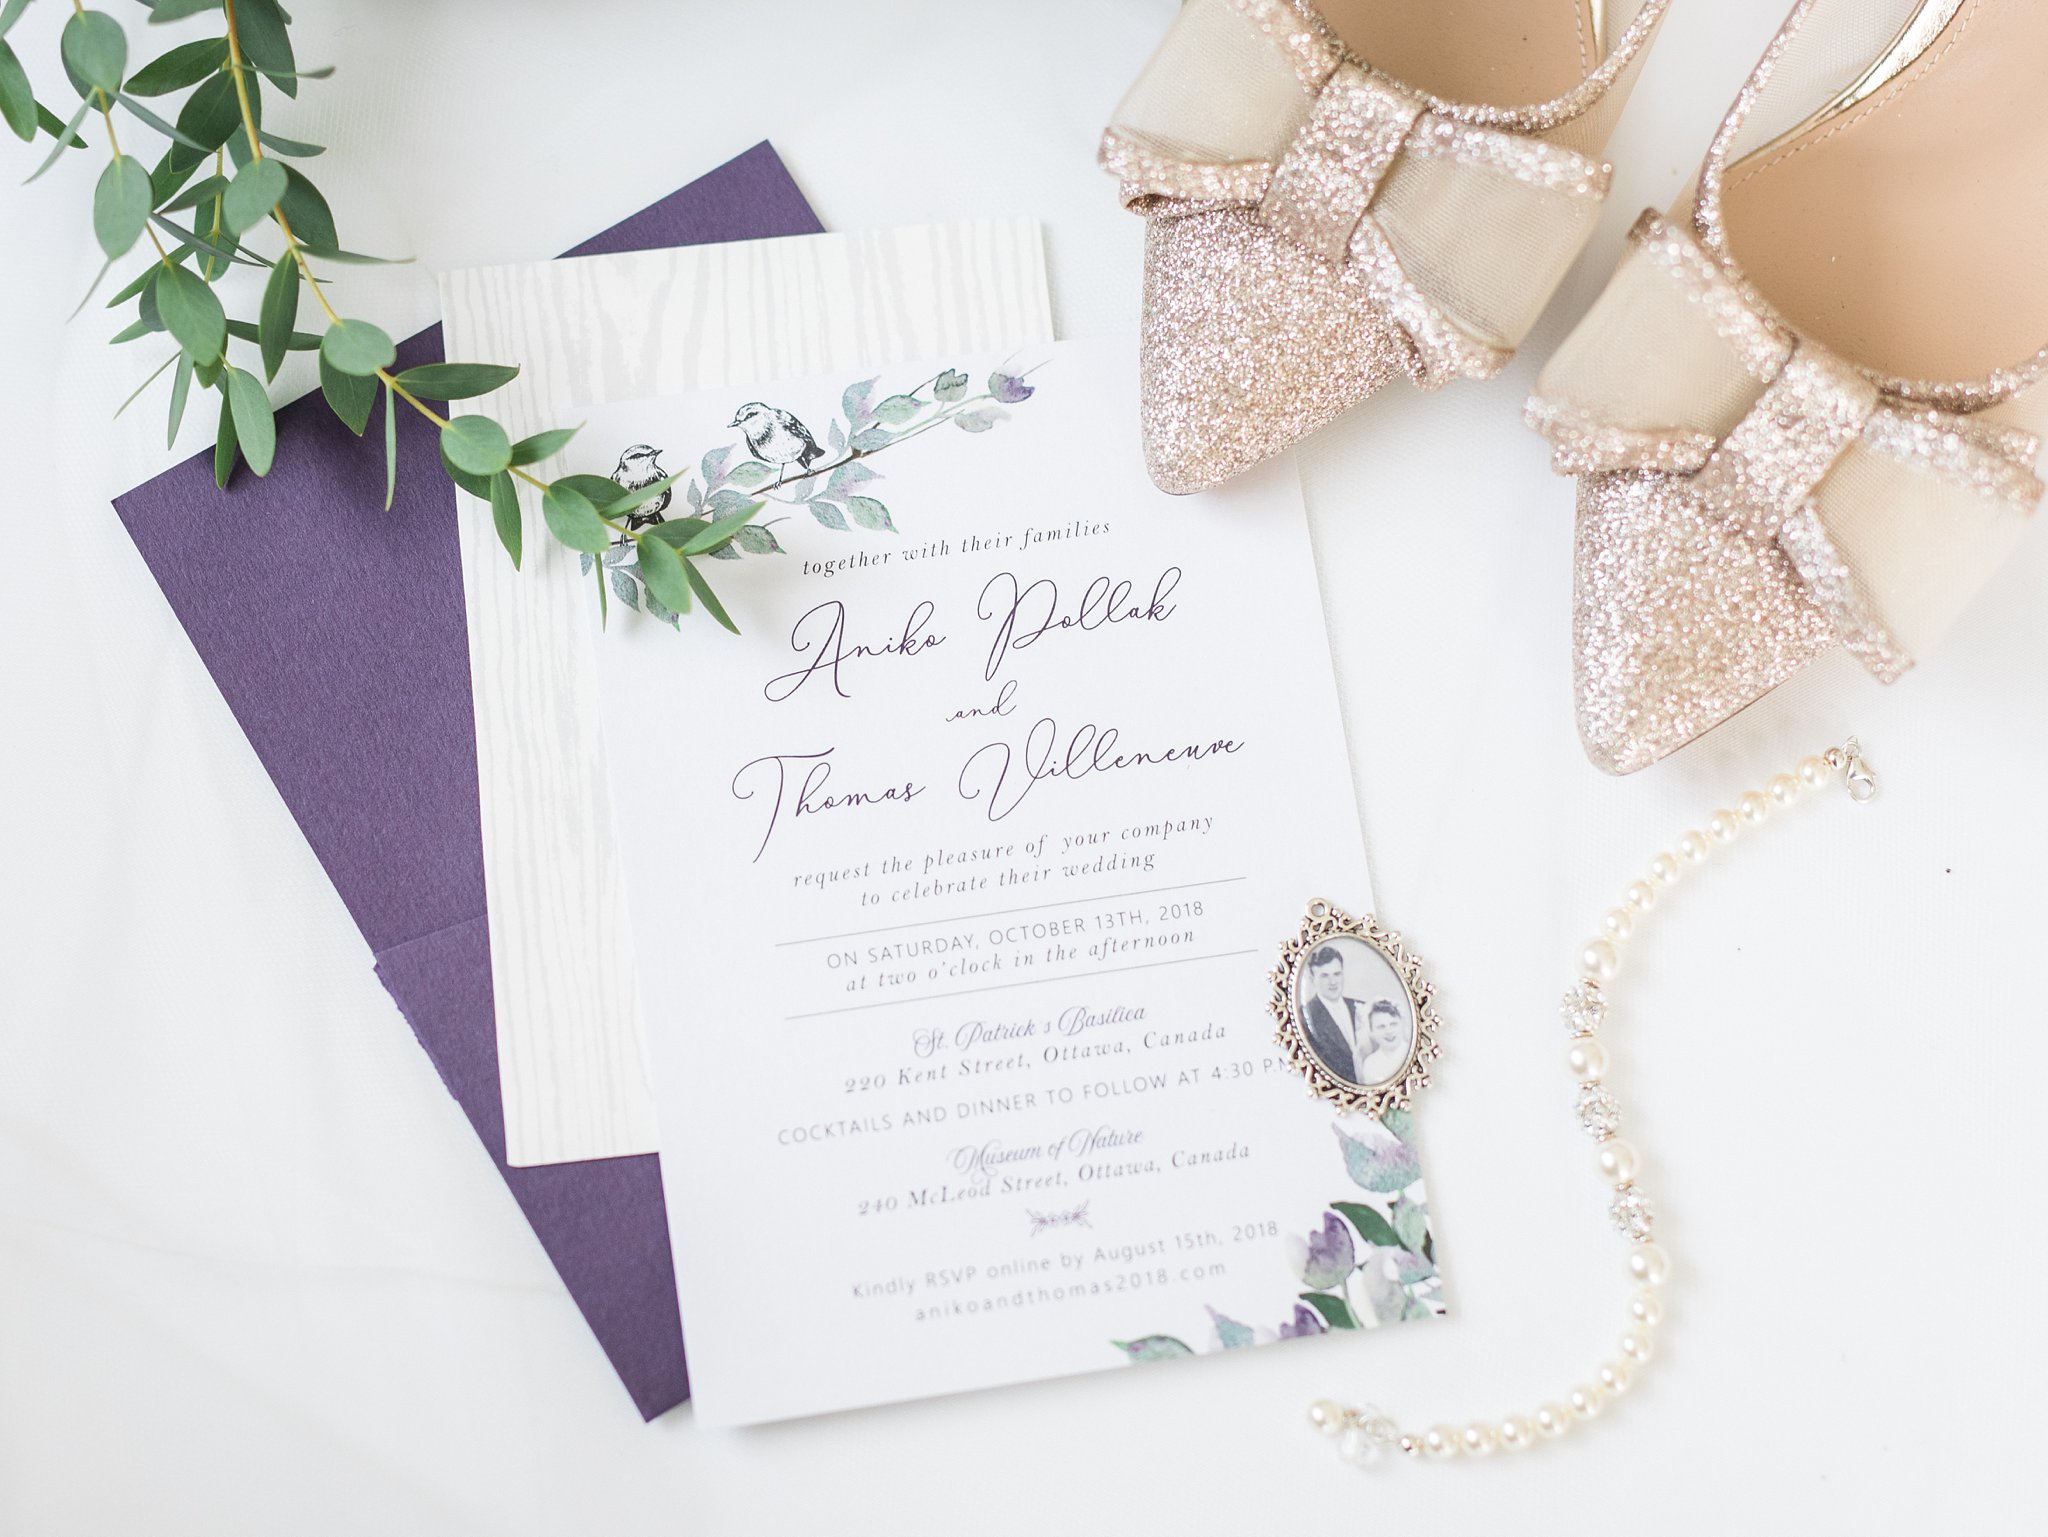 Hashtag Paper wedding invitations A Festive Fall Wedding at the Canadian Museum of Nature